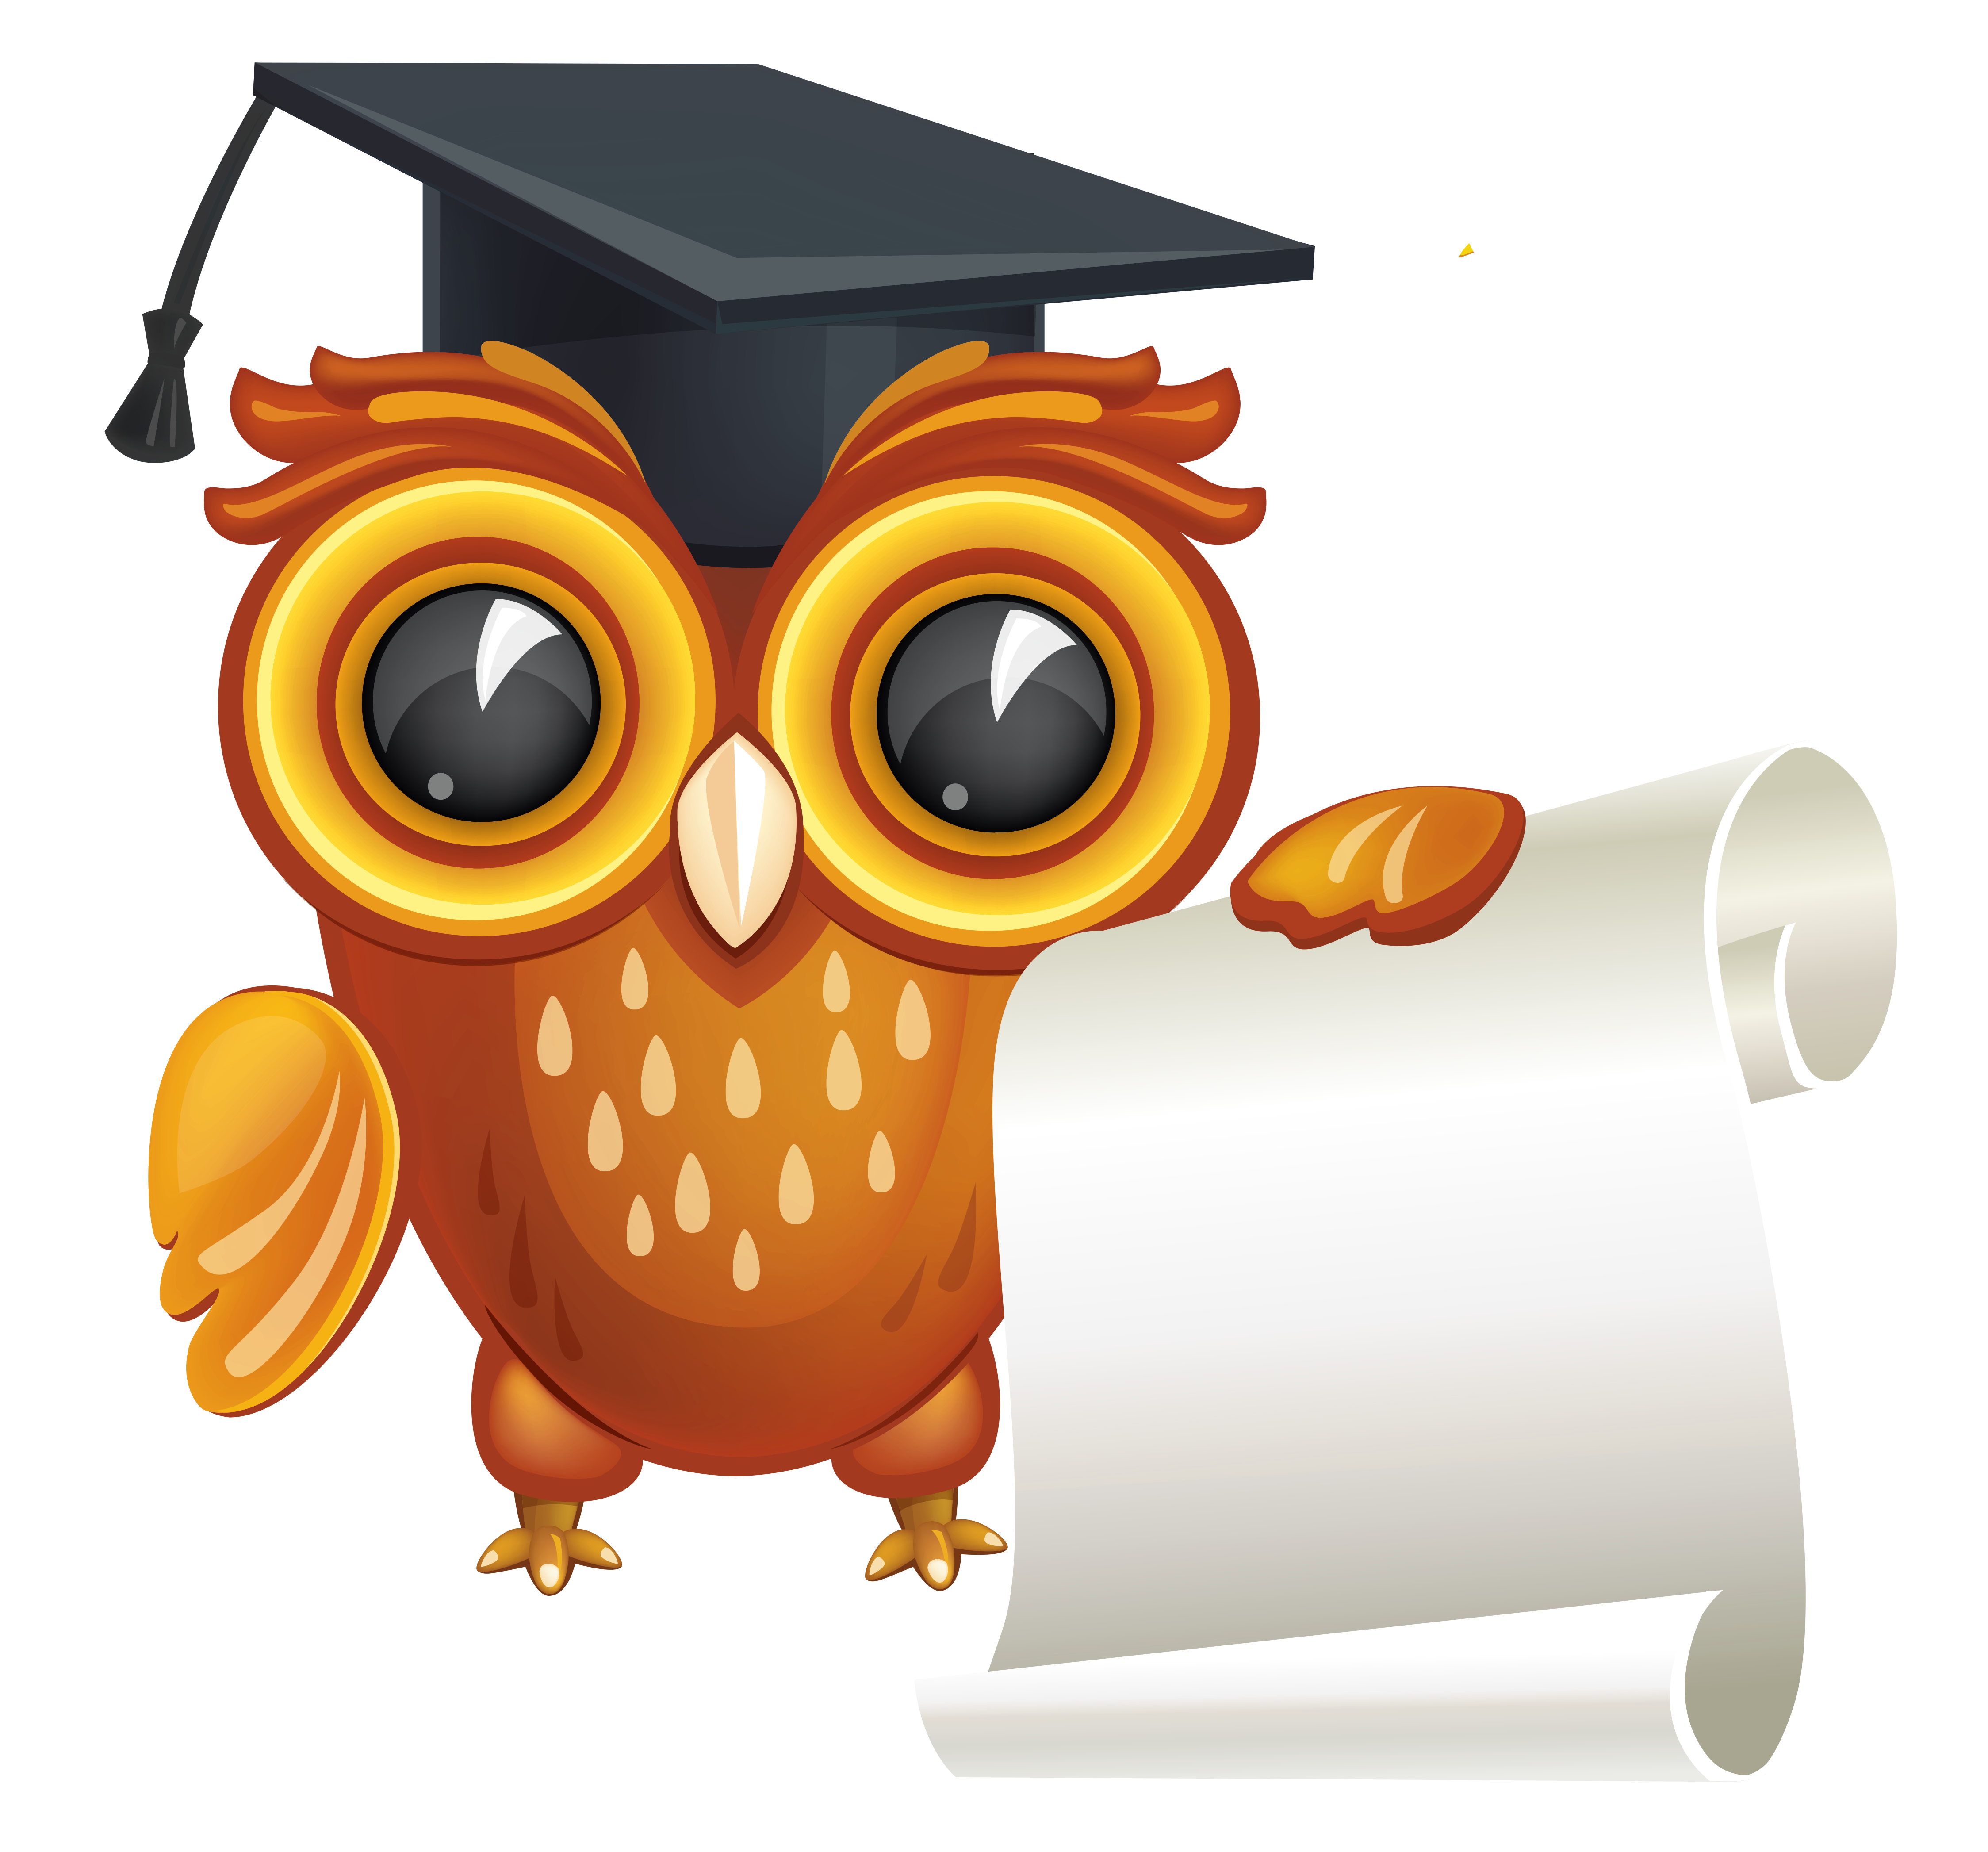 Owl with png image. Diploma clipart